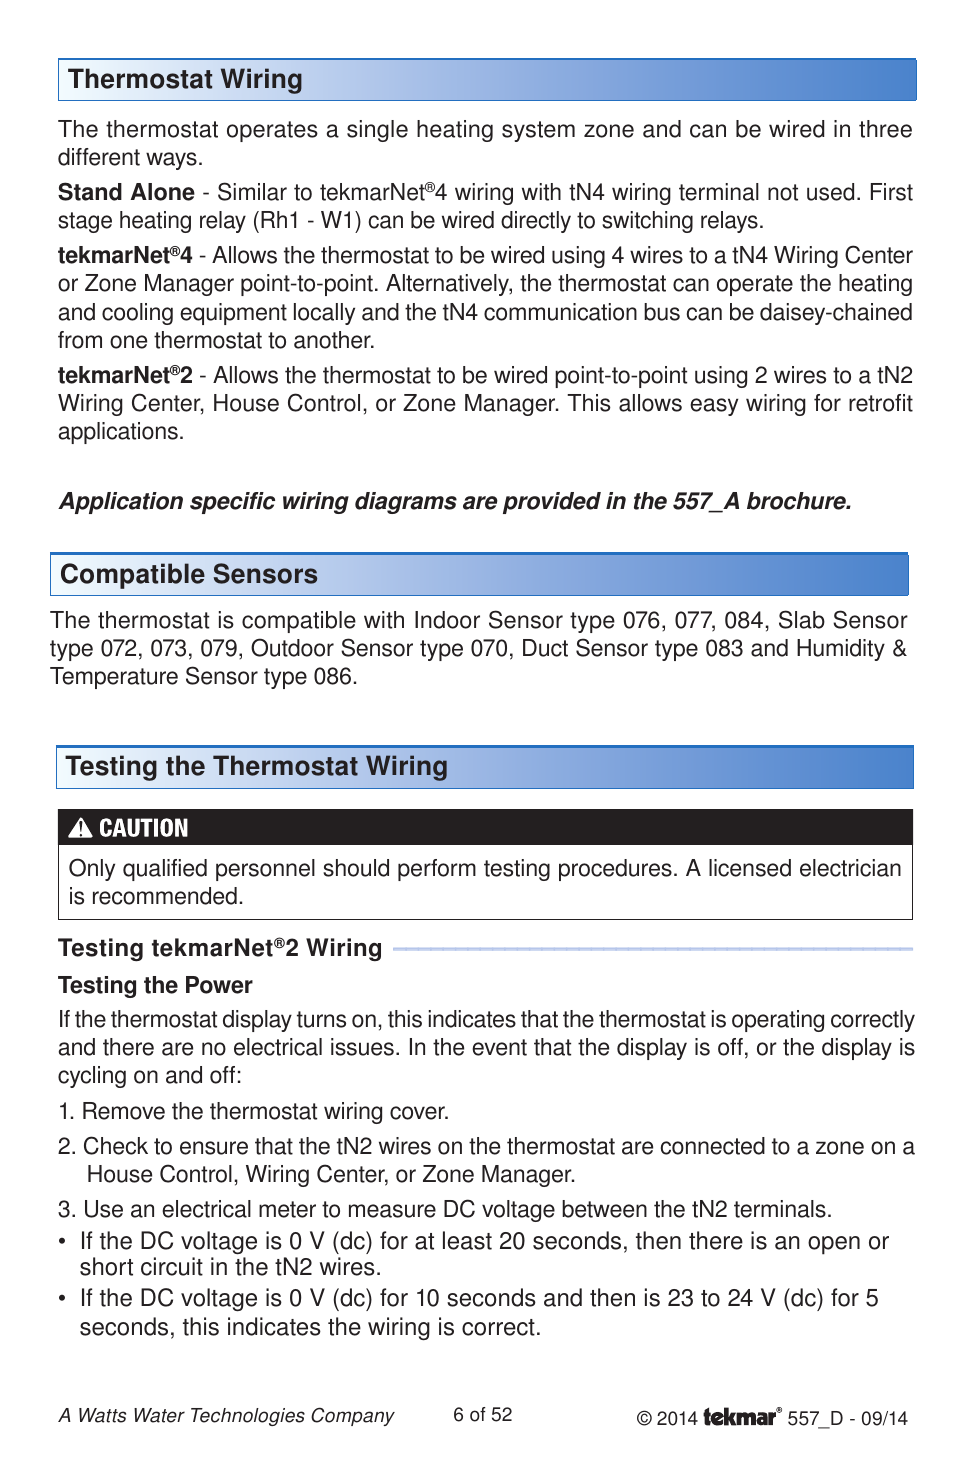 thermostat wiring, testing the thermostat wiring compatible sensors |  tekmar 557 thermostat installation user manual | page 6 / 52